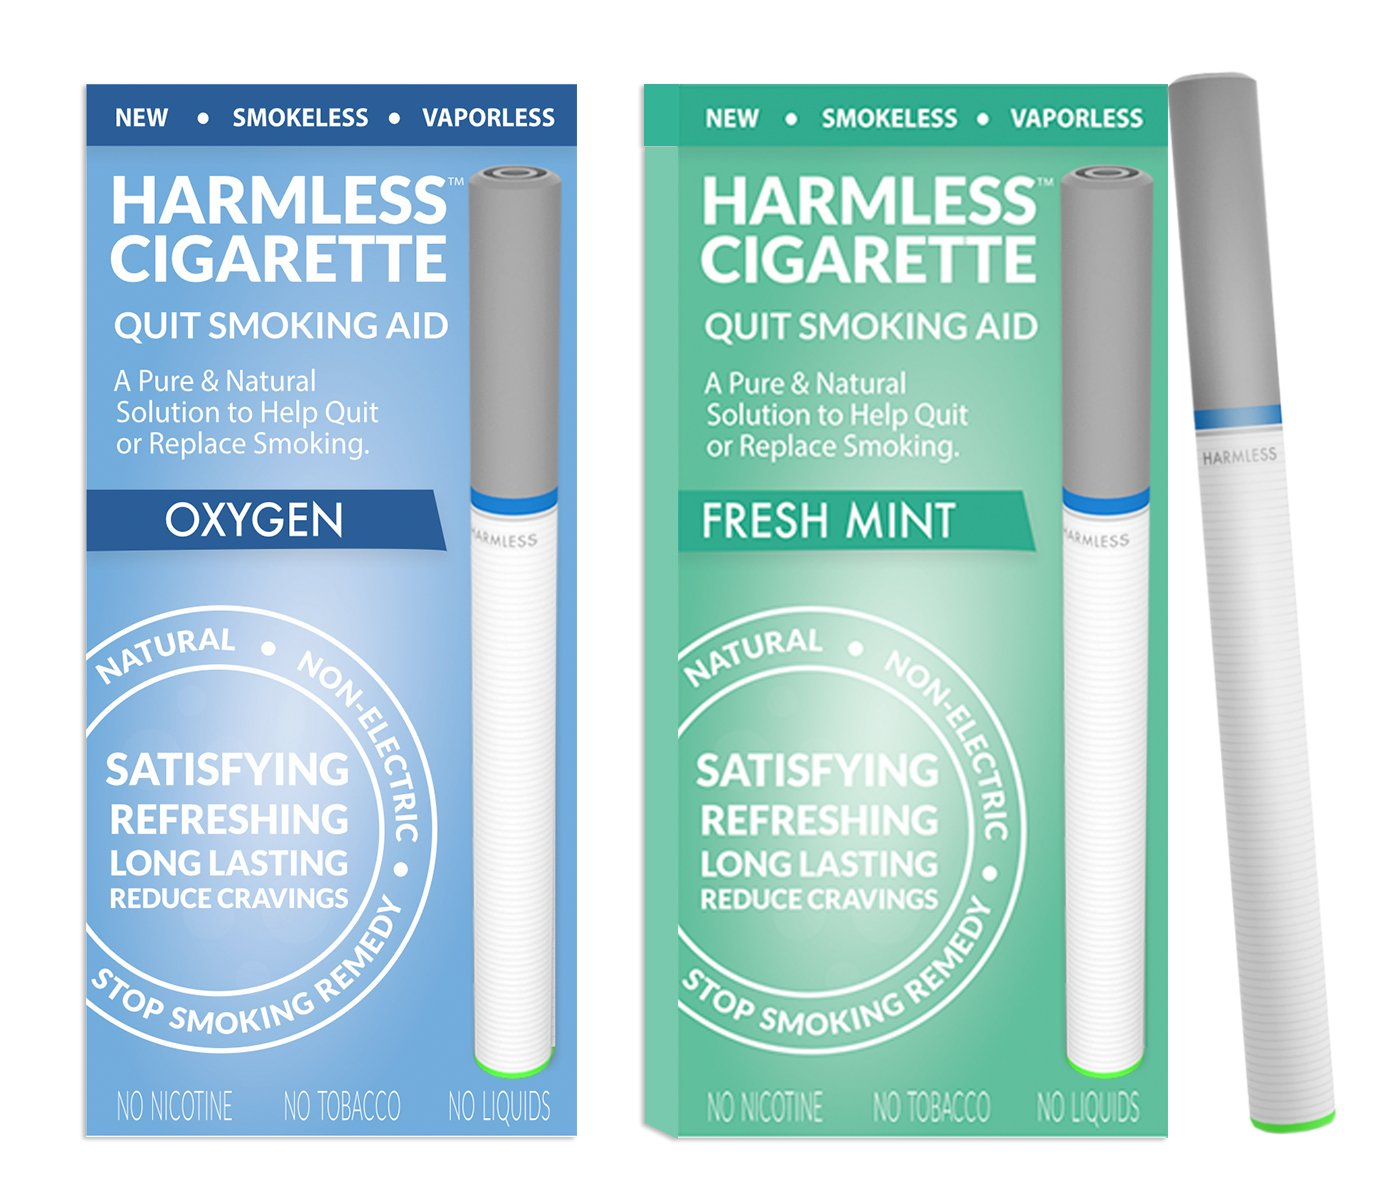 New | Quit Smoking Aid | Stop Smoking Remedy To Help Quit & Reduce Cravings | Natural & Therapeutic Quit Smoking Solution | Harmless Cigarette (2 Pack, Variation Set -, Oxygen / Fresh Mint)